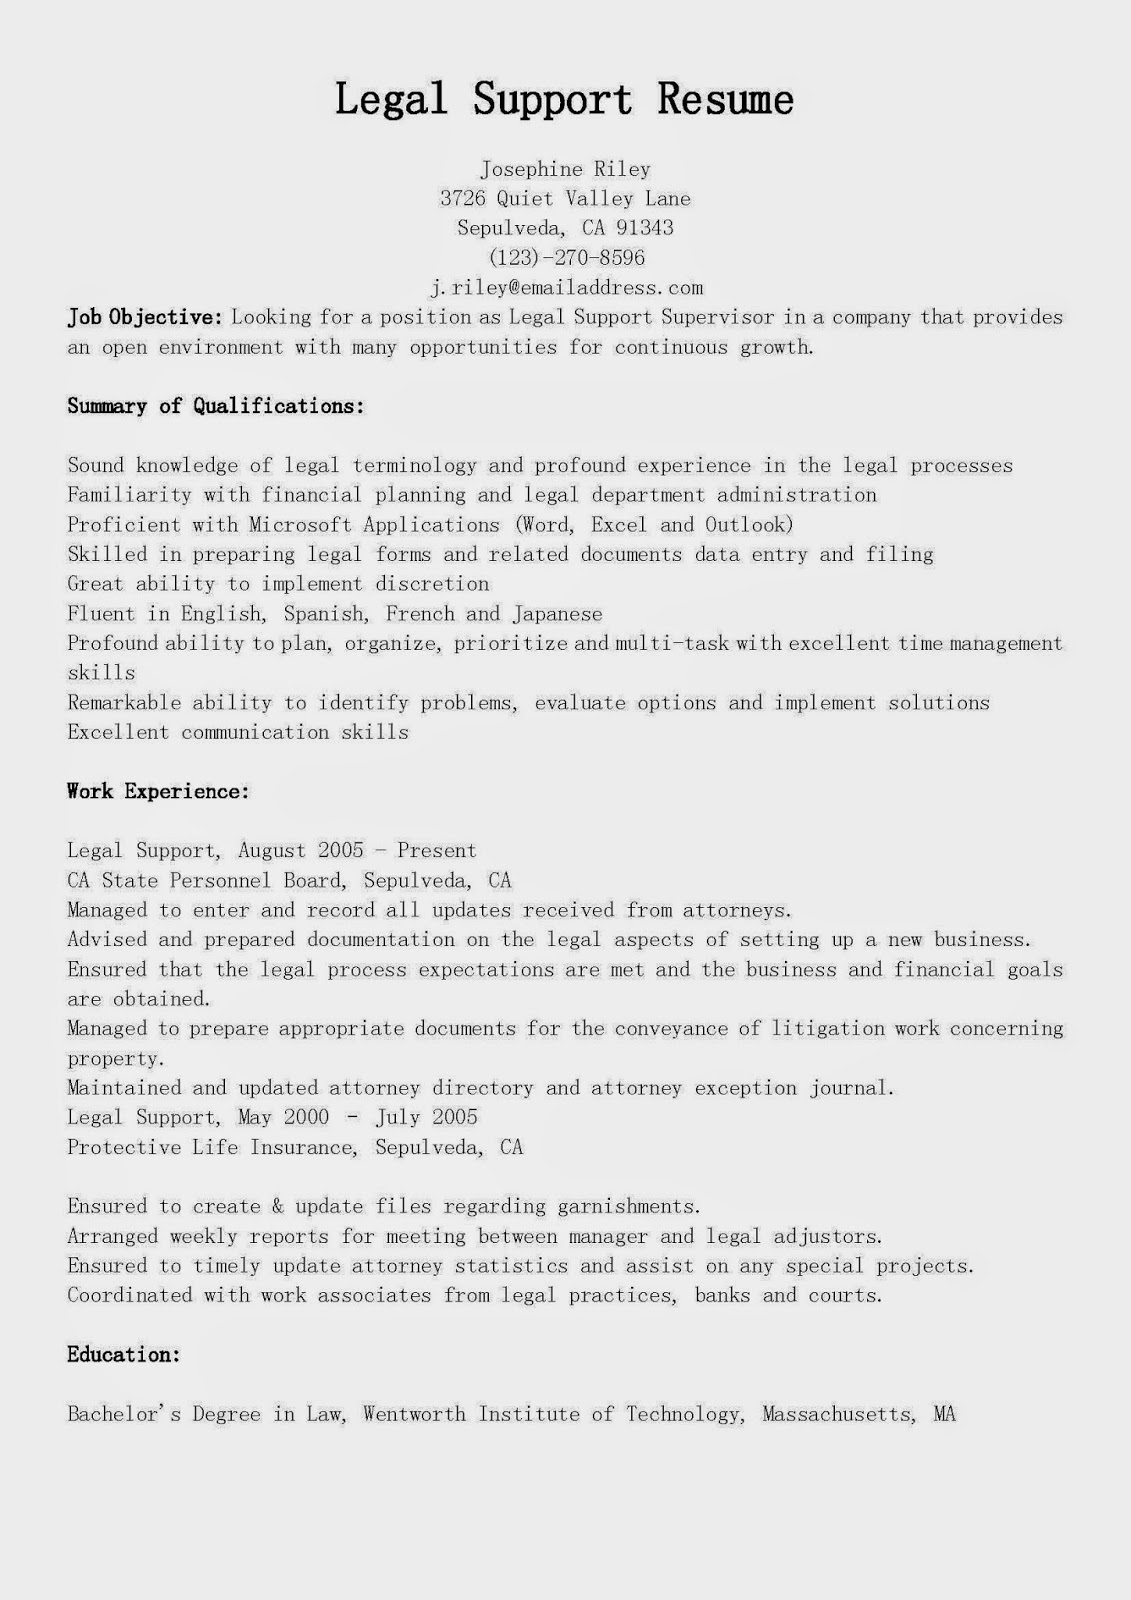 Legal Resume Format paralegal cover letter example clparalegal legal paralegal cover lawyer resume format experienced attorney resume template law resume format best lawyer Com Legal Resume Format